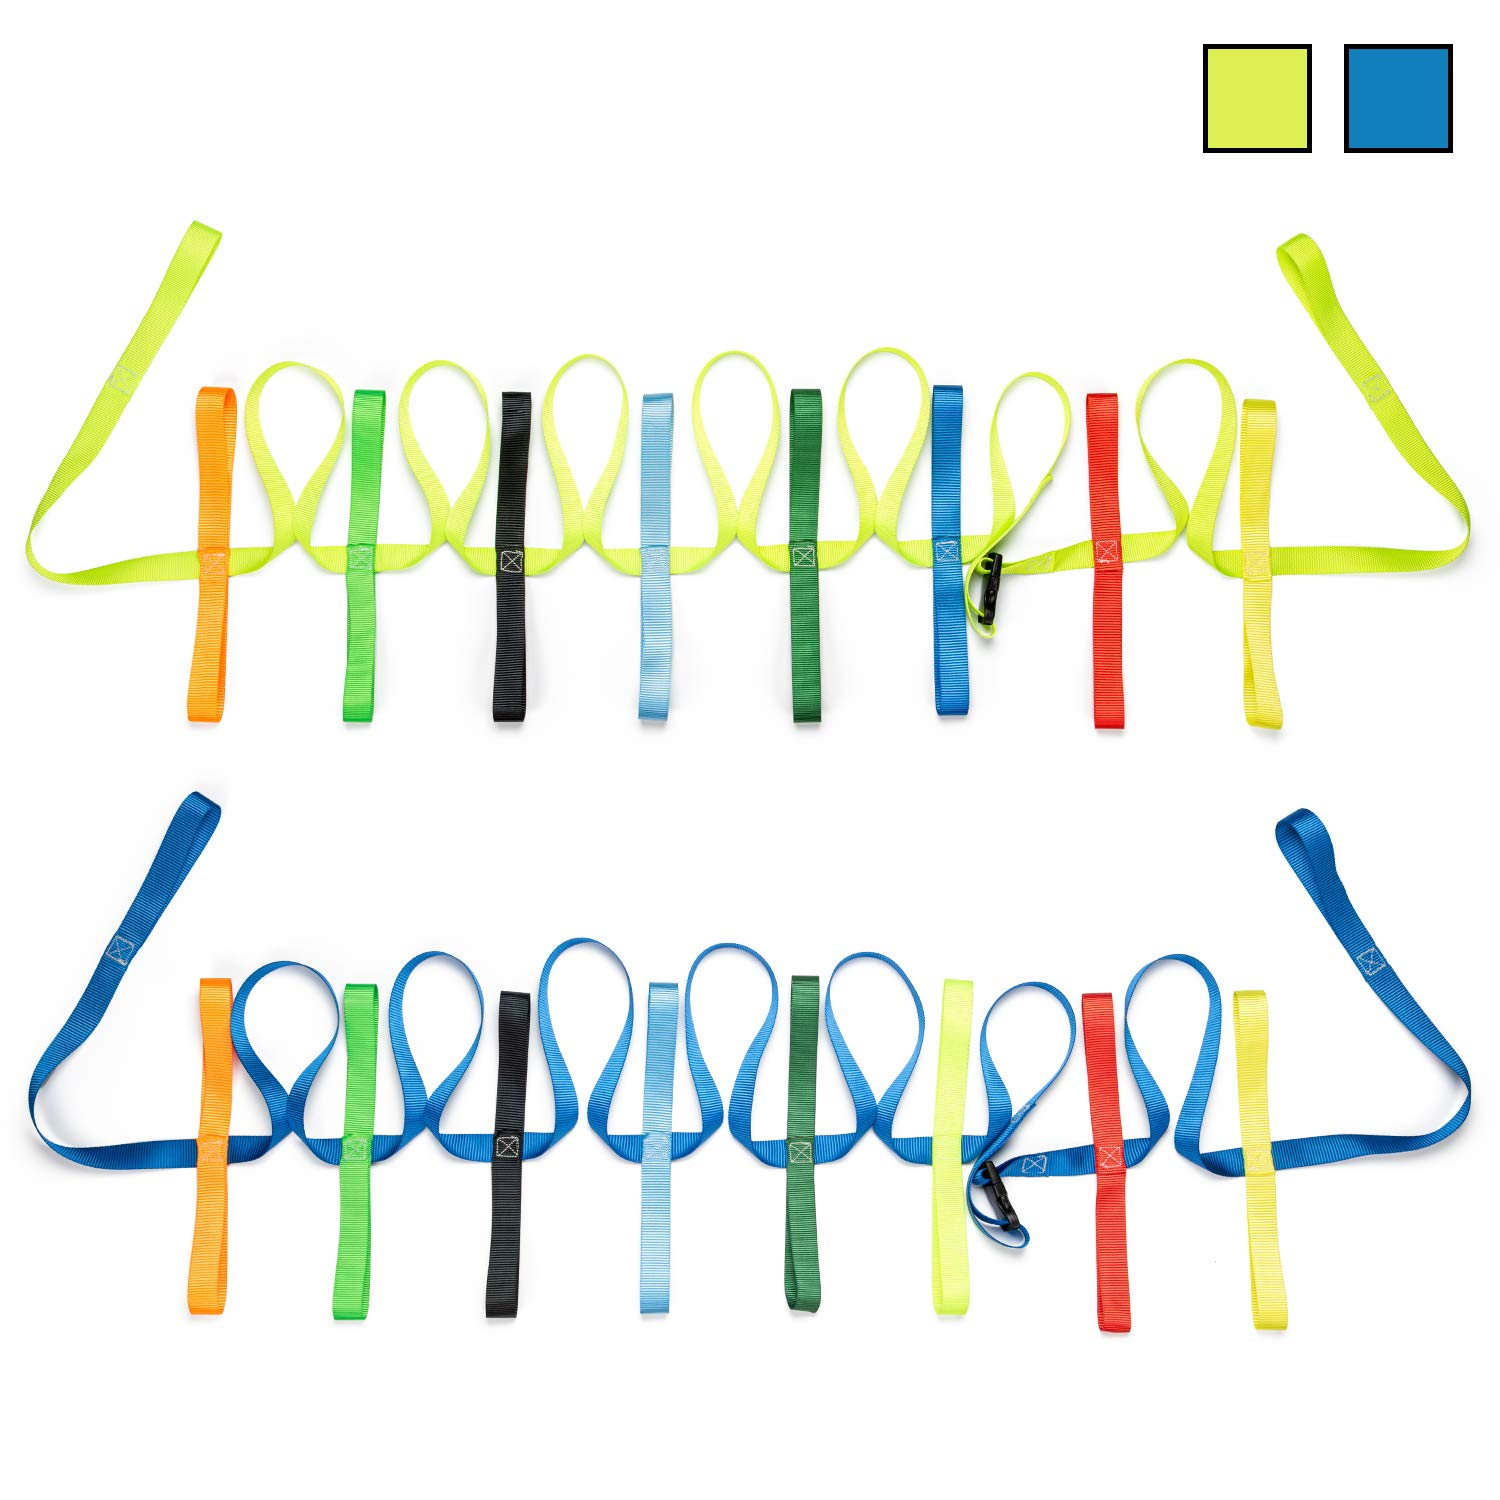 The Learning Classroom 12-child w/ 4-child extension walking rope for preschool | daycare w/ carry bag.